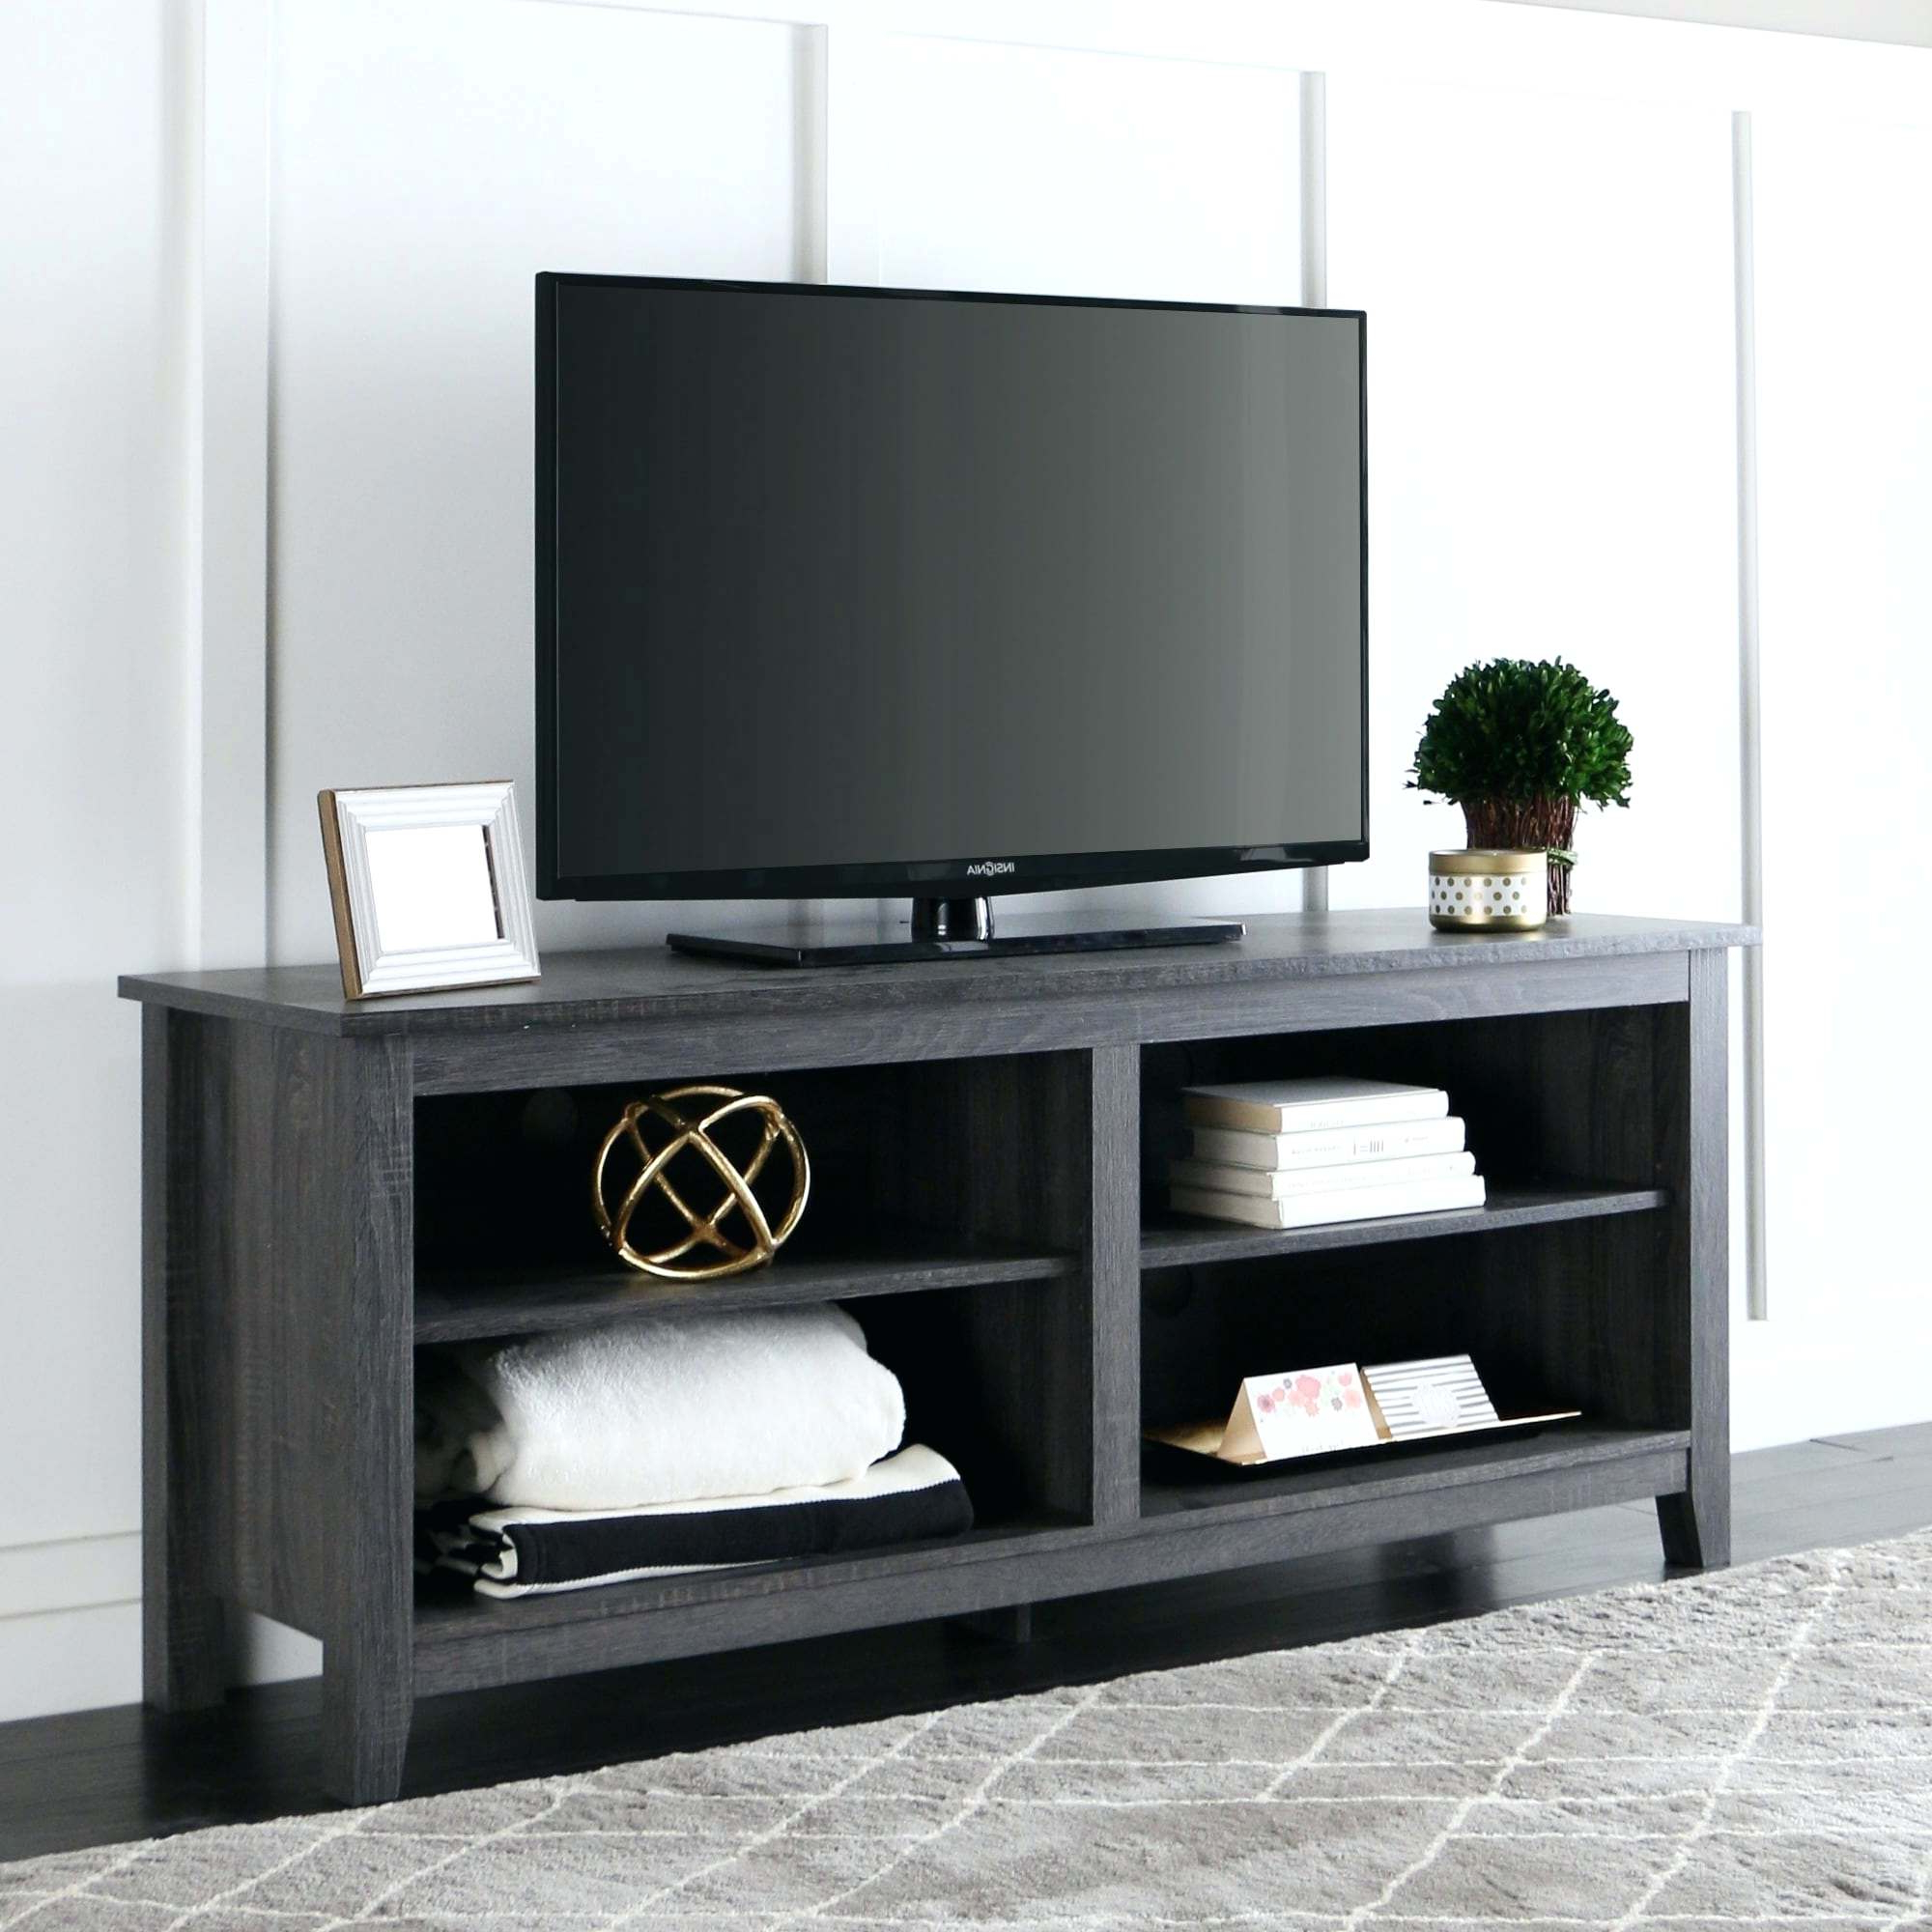 Sinclair Tv Console Ii Chest Of Drawers Sinclair White 64 Inch Tv In Sinclair Grey 64 Inch Tv Stands (View 12 of 20)